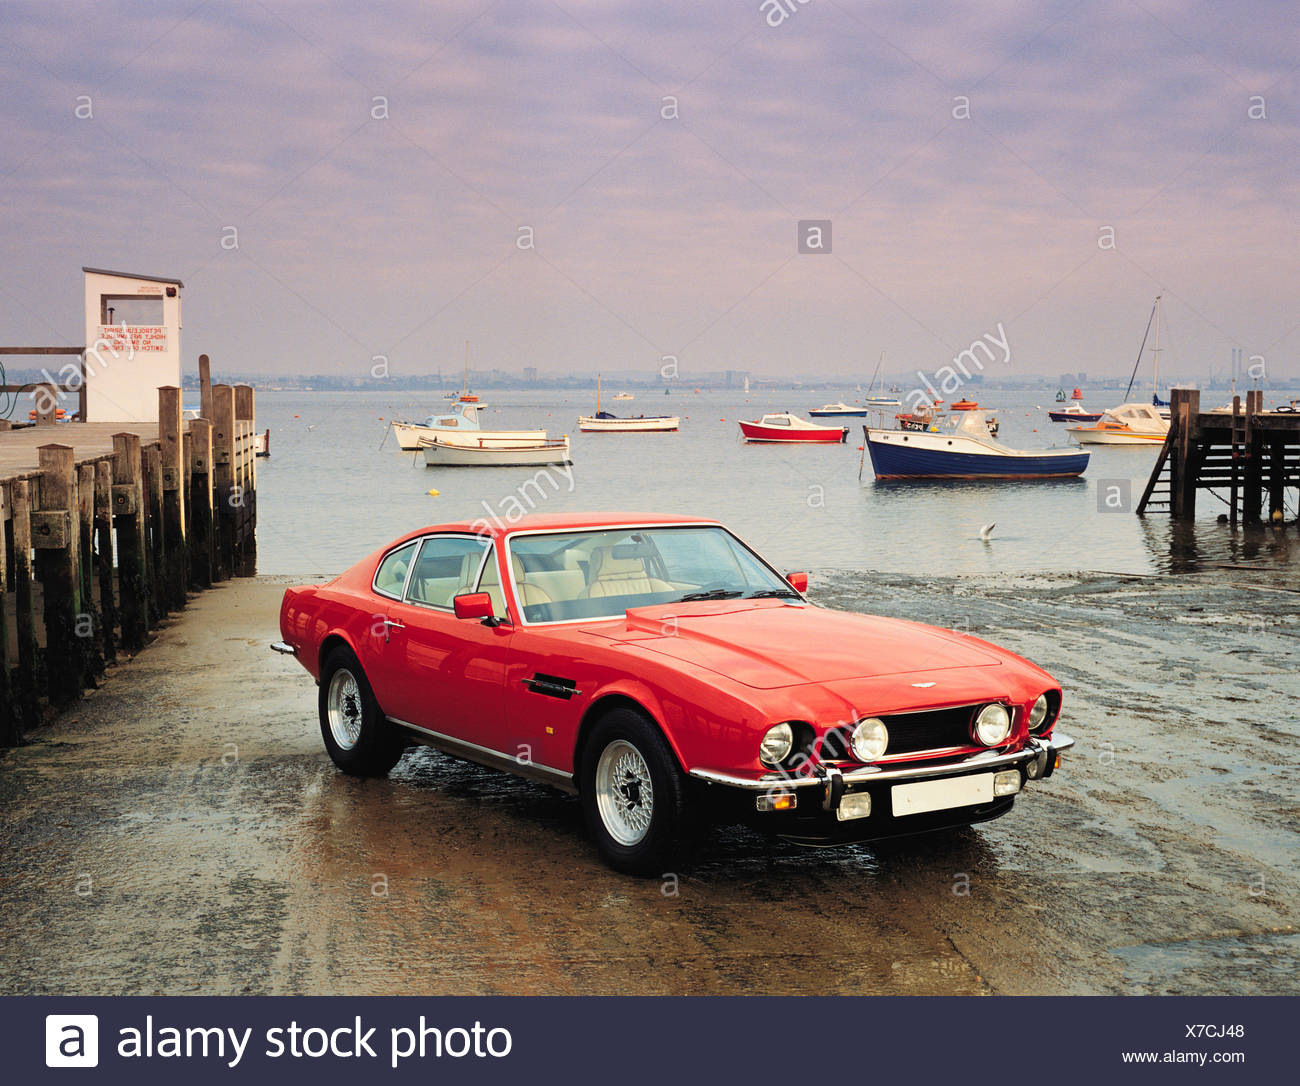 Red Aston Martin Dbs Sports Car On Harbour Slipway With Boats In Background British 1980 S Classic Motor Vehicle Stock Photo Alamy